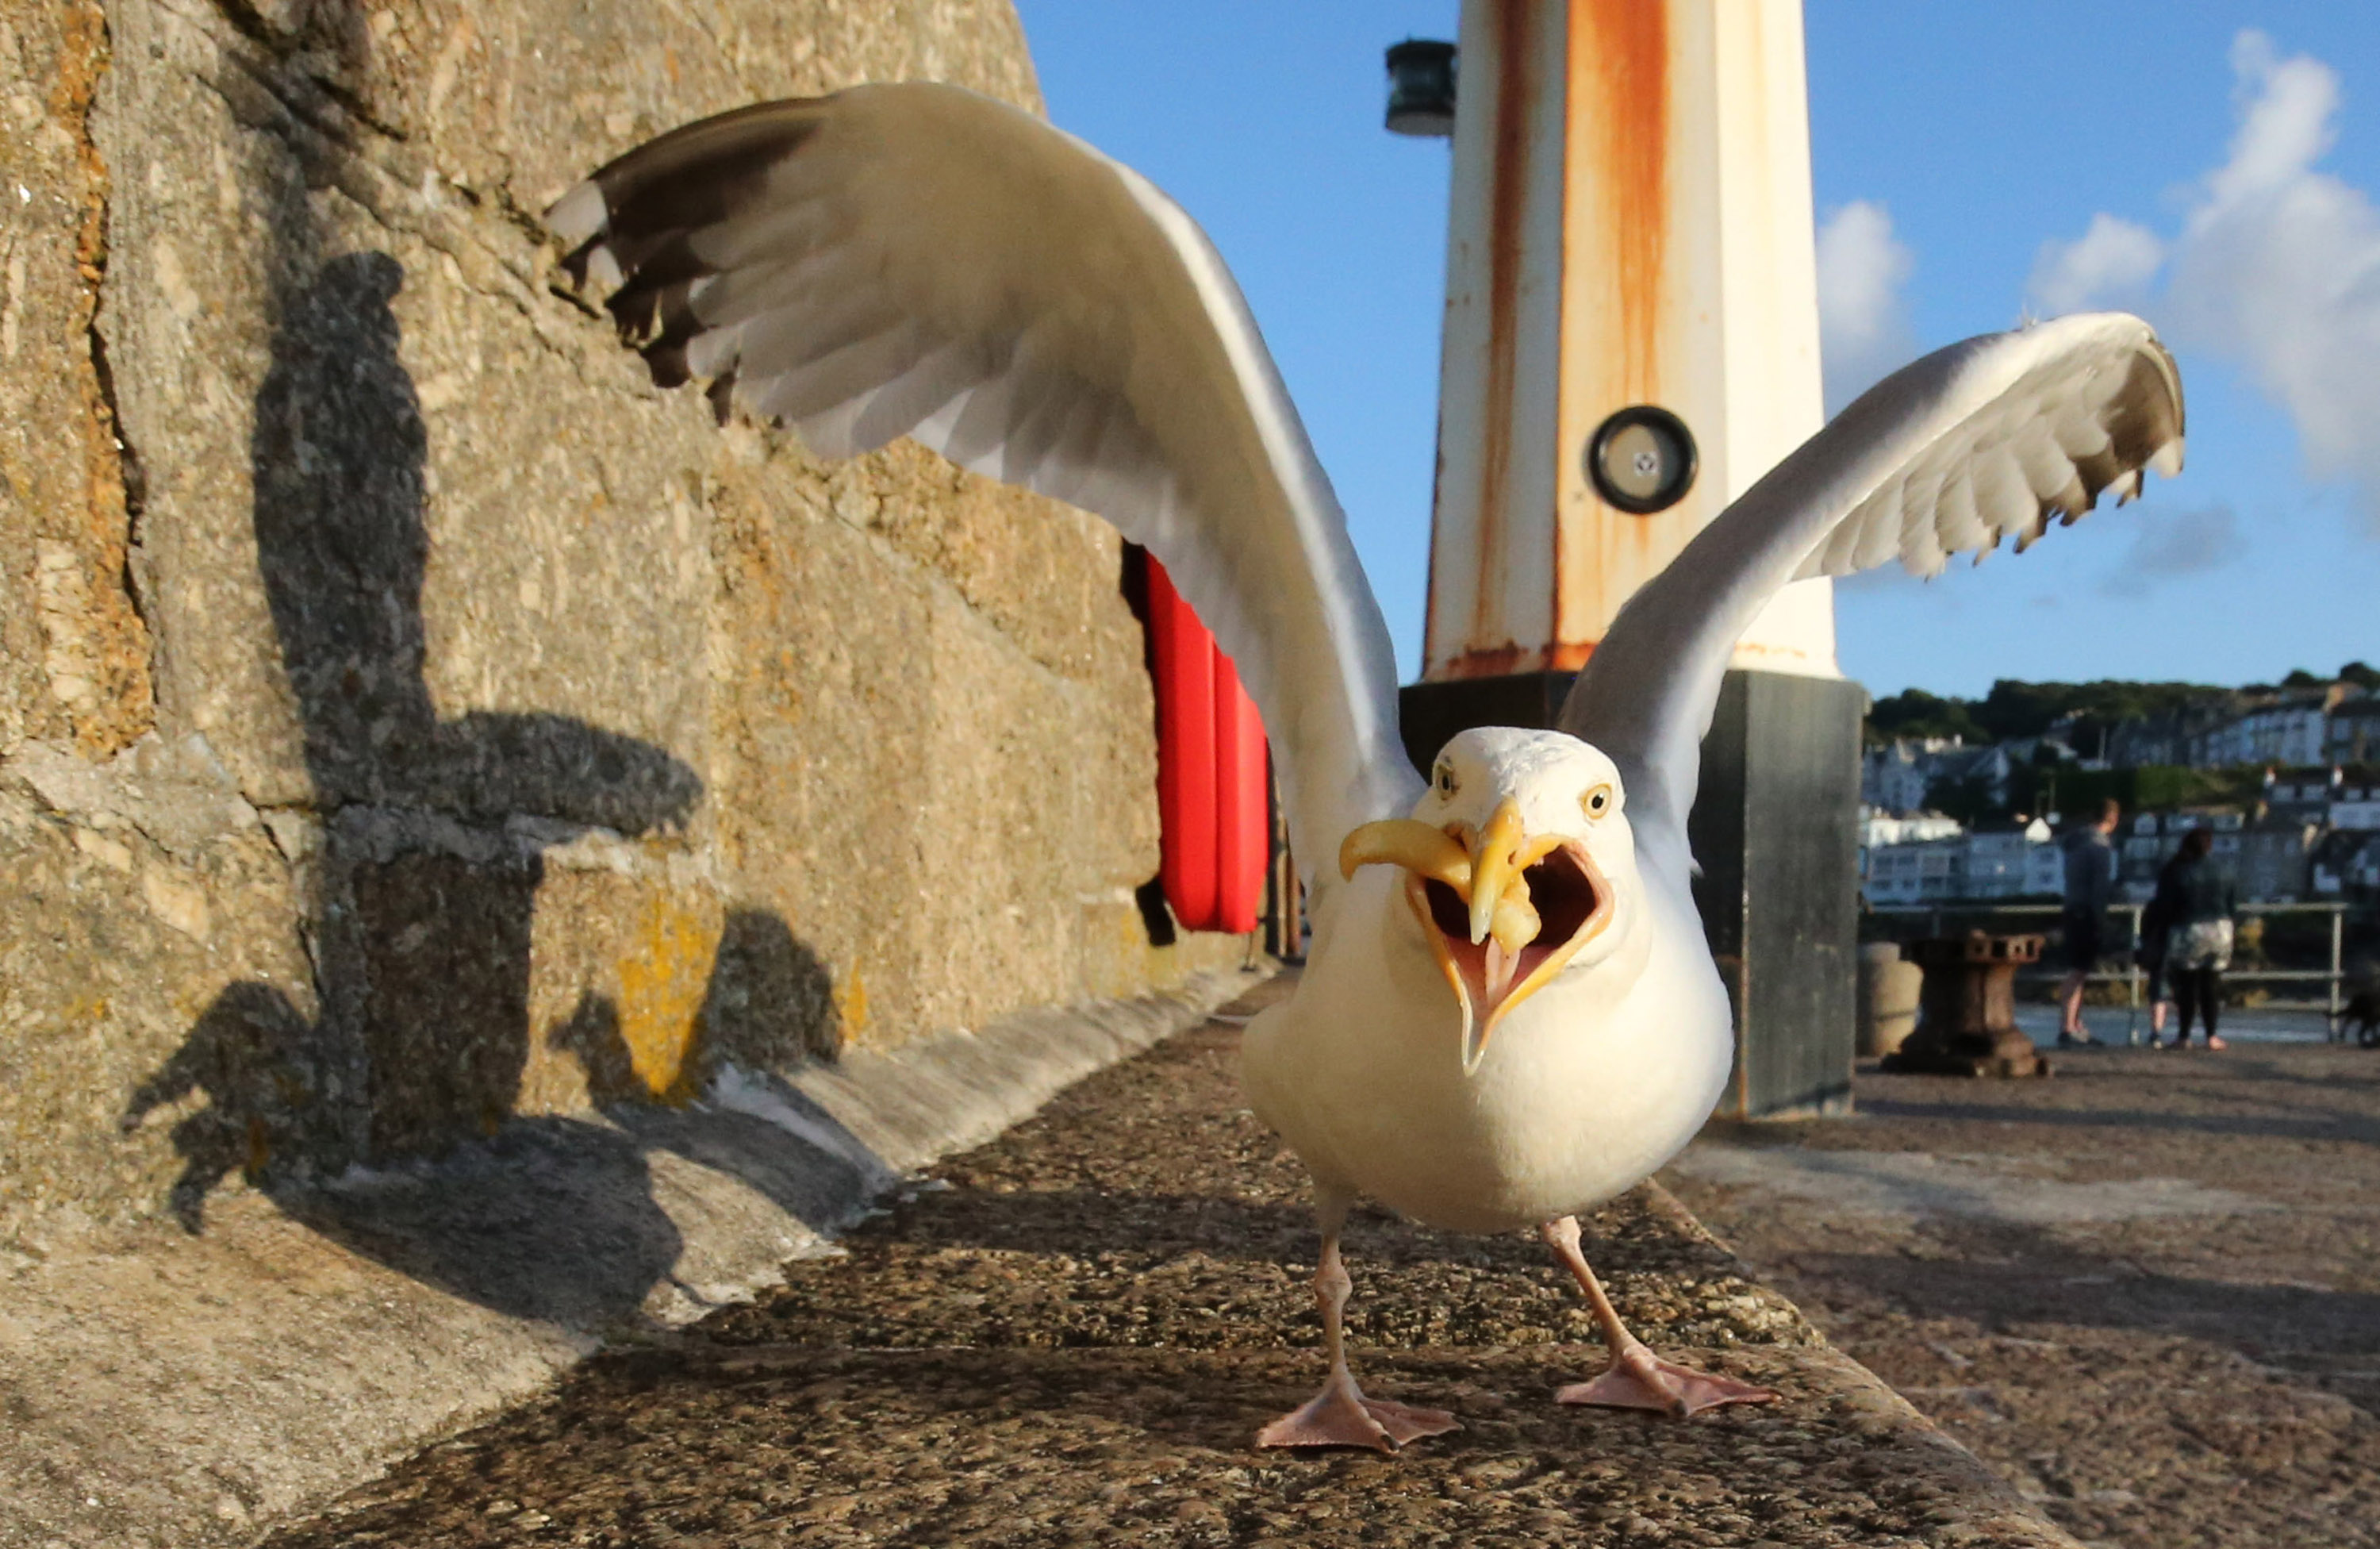 a seagull with its wings aggressively unfurled and seemingly mid-squawk with a french fry in its mouth stairs down the camera